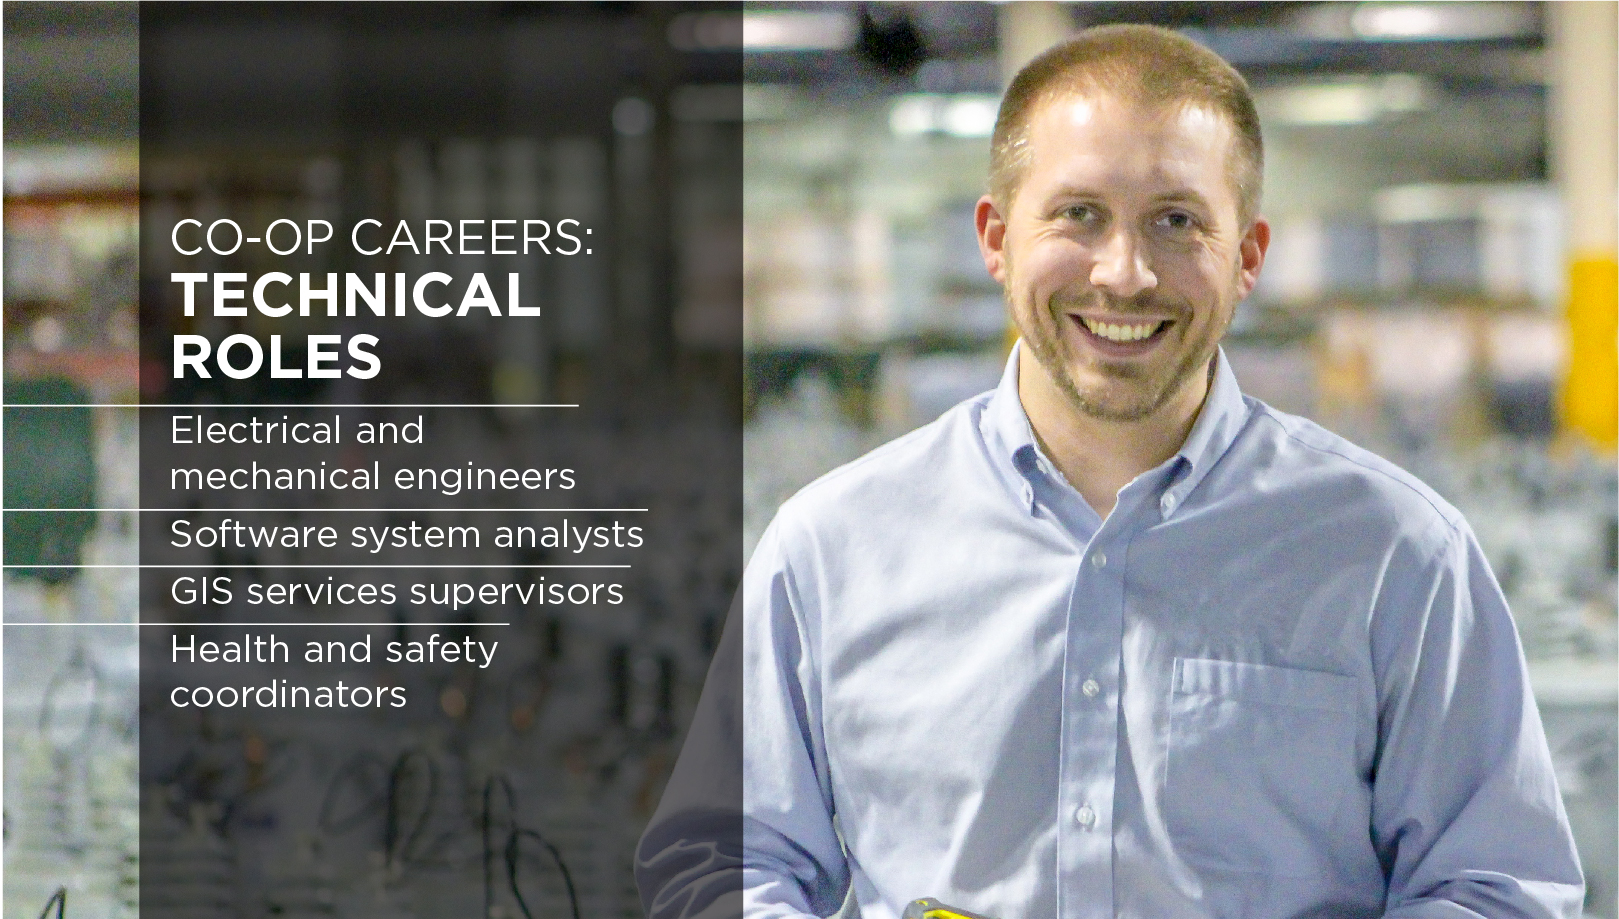 technical careers